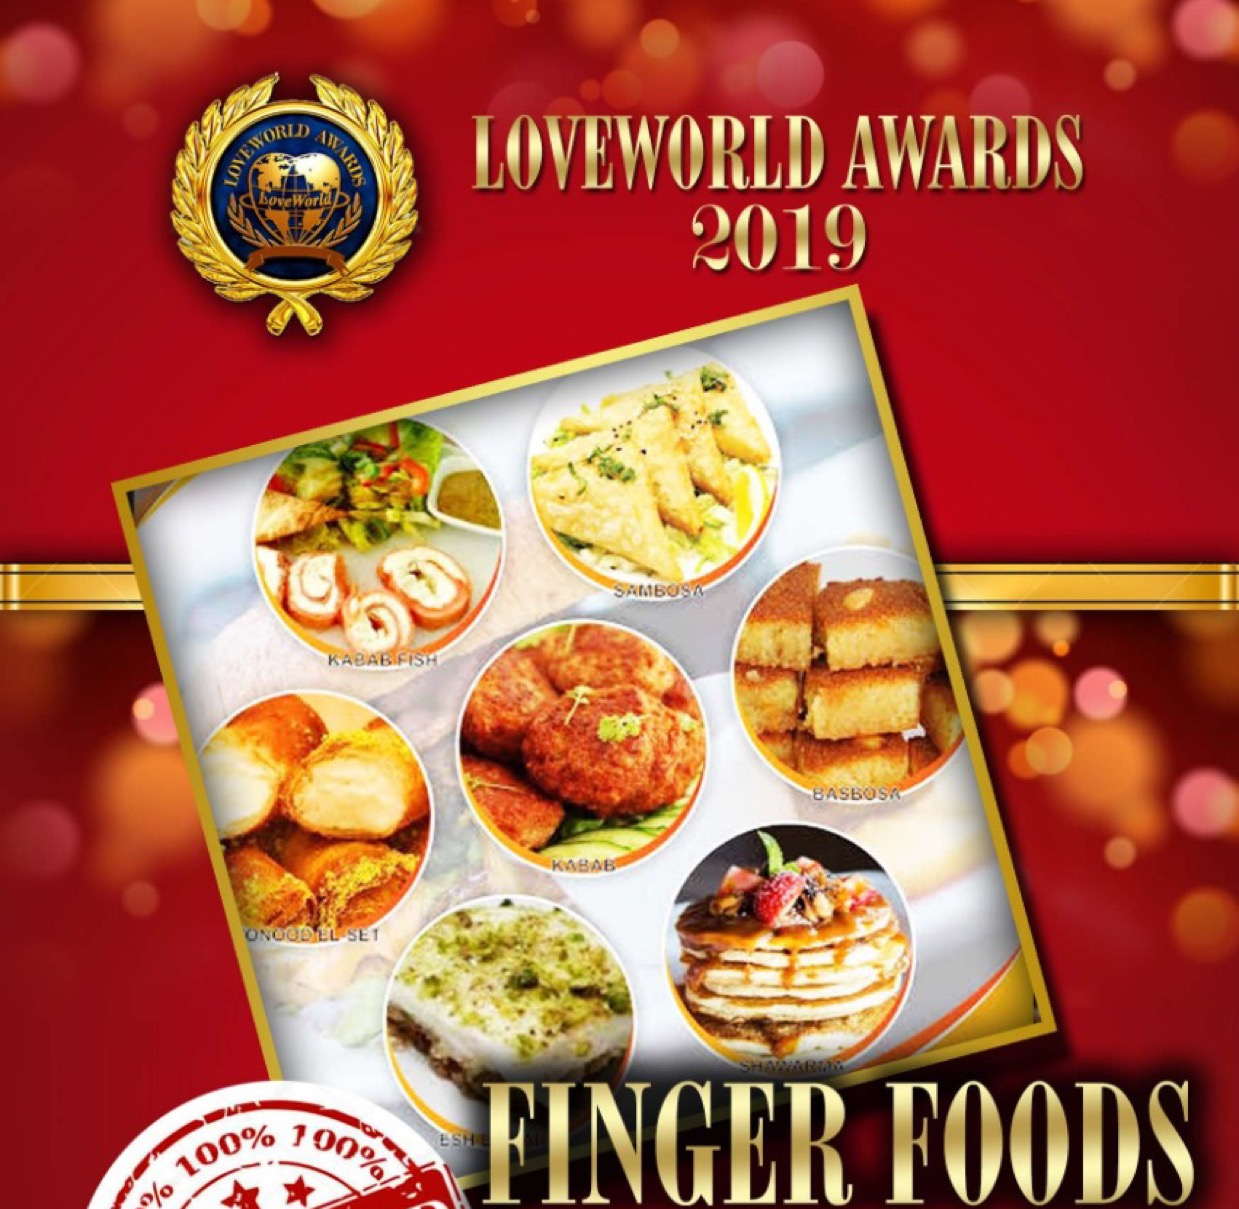 GET THE LOVEWORLD AWARDS RED